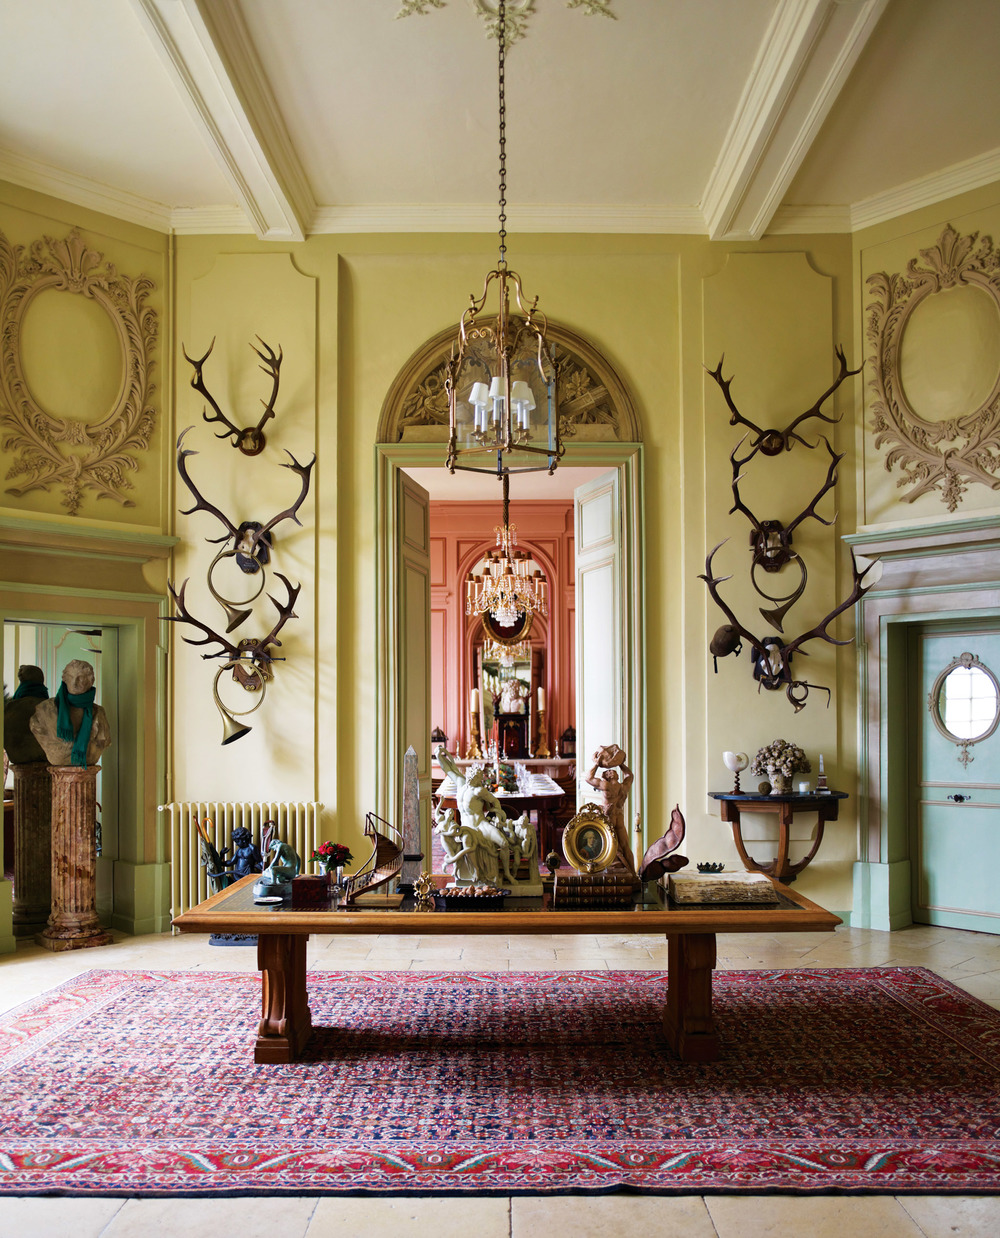 Corrigan's classical tastes walk hand-in-hand with antique treasure hunting, with two of his dearest fids being a massive 1940s table by Jean-Charles Moreaux in his French chateau, and a c. 1975 mahogany cabinet depicting, in porcelain, 32 great Greek gods and philosophers, in his Los Angeles study.